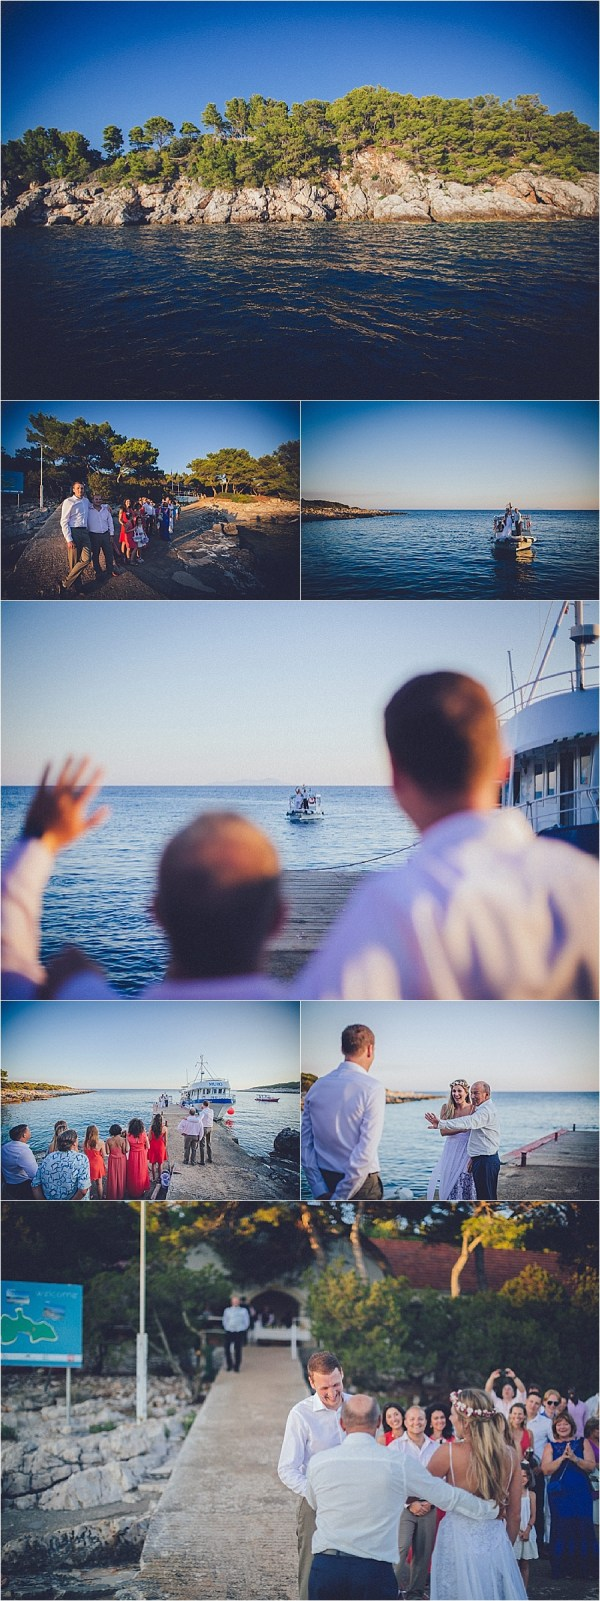 The bride arrives at her island wedding by boat in Croatia by Matija Kljunak Weddings